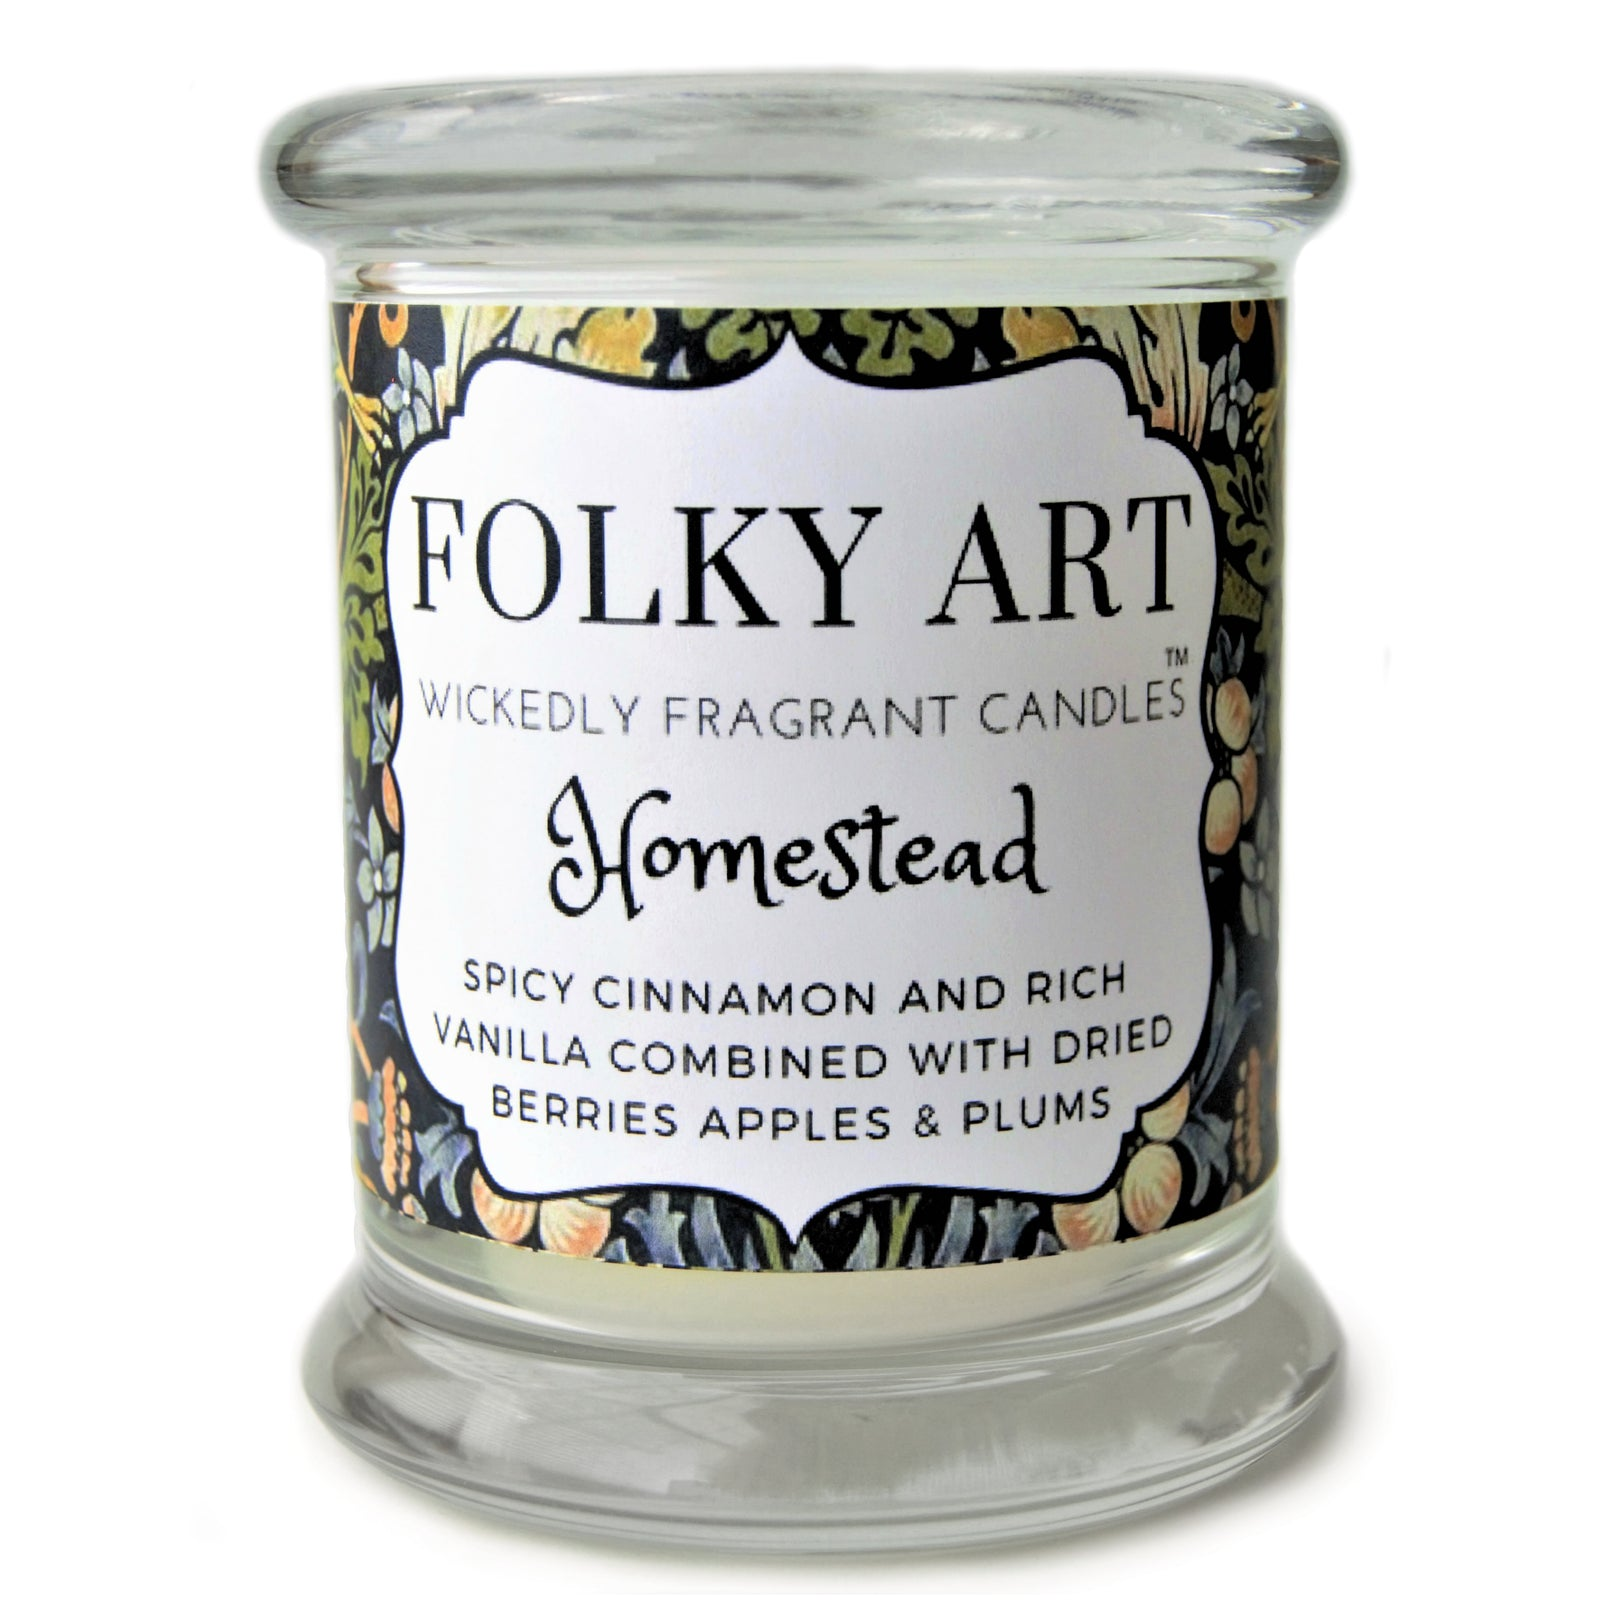 Homestead Jar Candle picture - Folky Art Candles